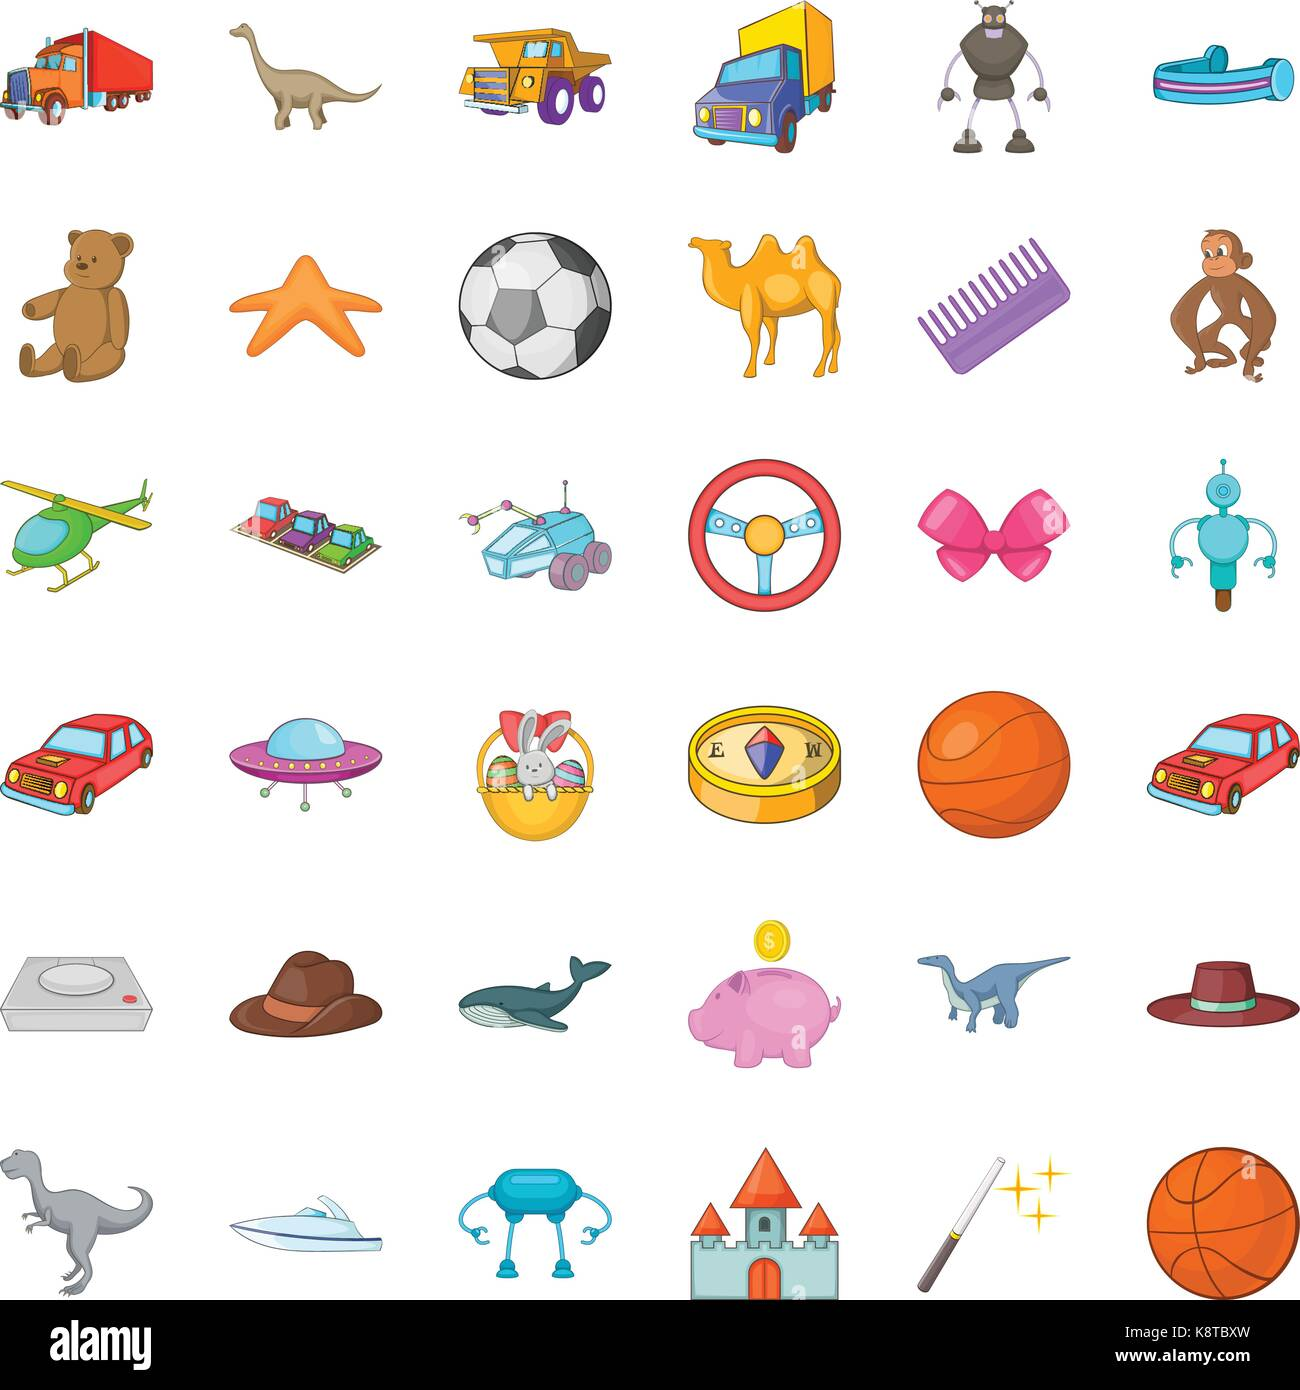 Dinosaurs icons set, cartoon style - Stock Image